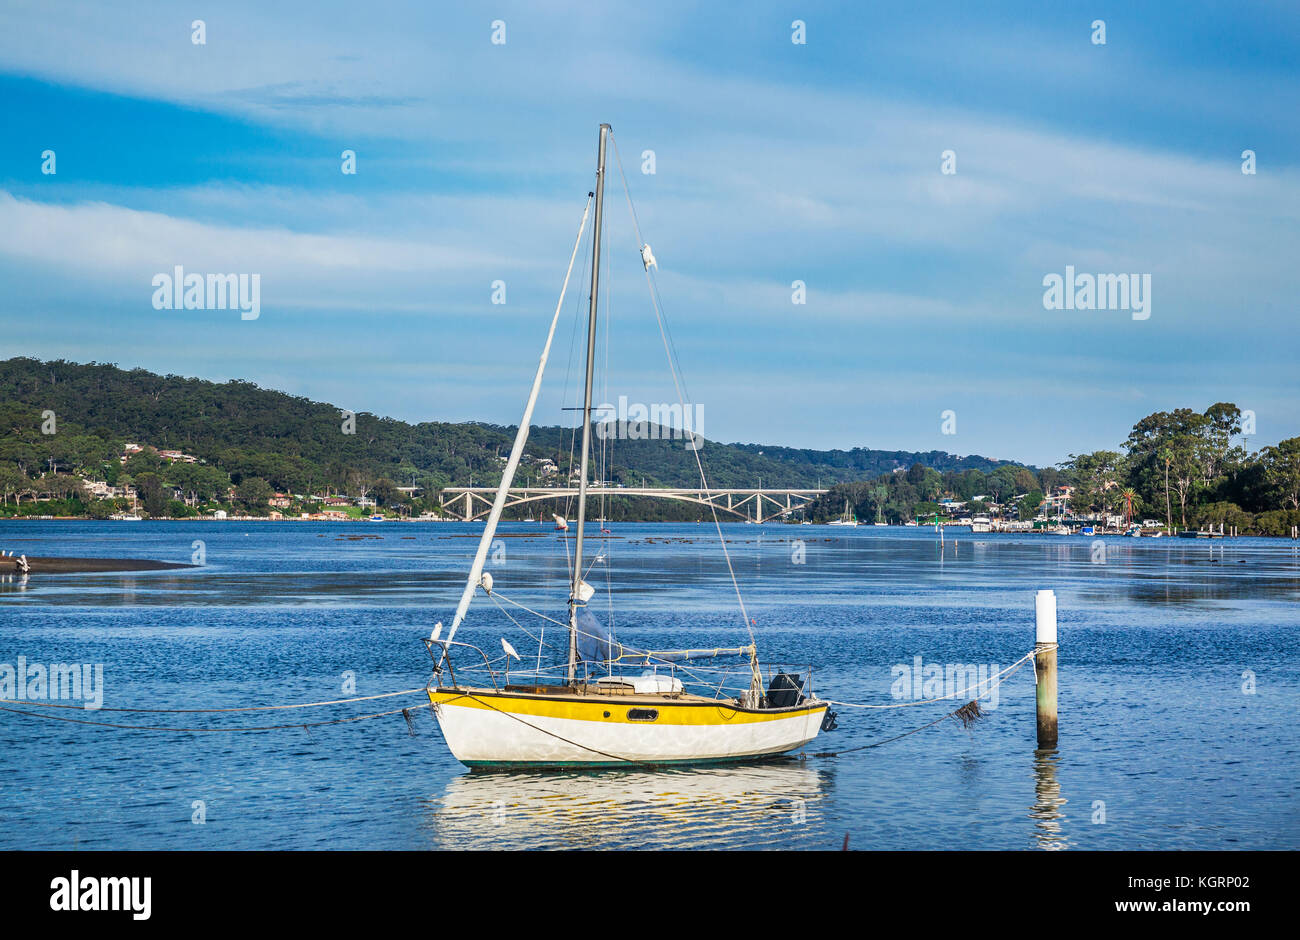 Australia, New South Wales, Central Coast, Woy Woy,  sailing boat moord at Brisbane Water with view of the Rip Bridge - Stock Image